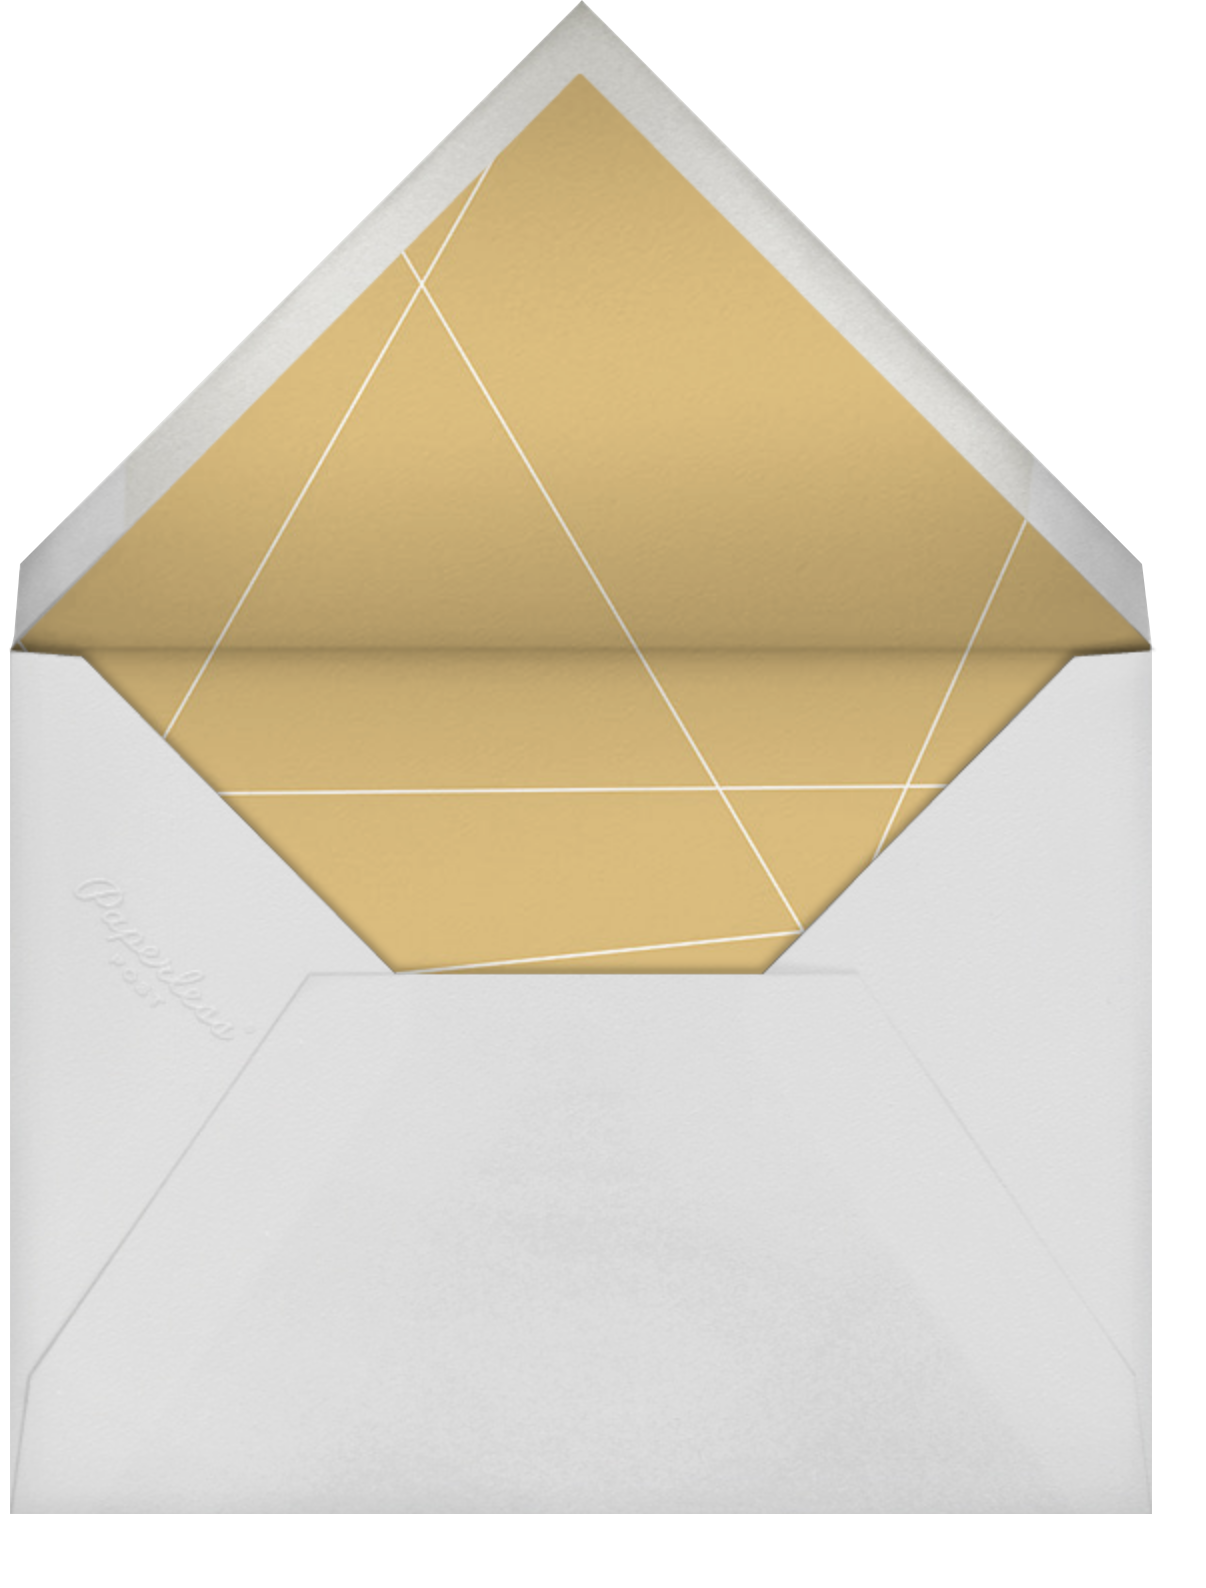 Nissuin Photo - Millet - Paperless Post - Bar and bat mitzvah - envelope back